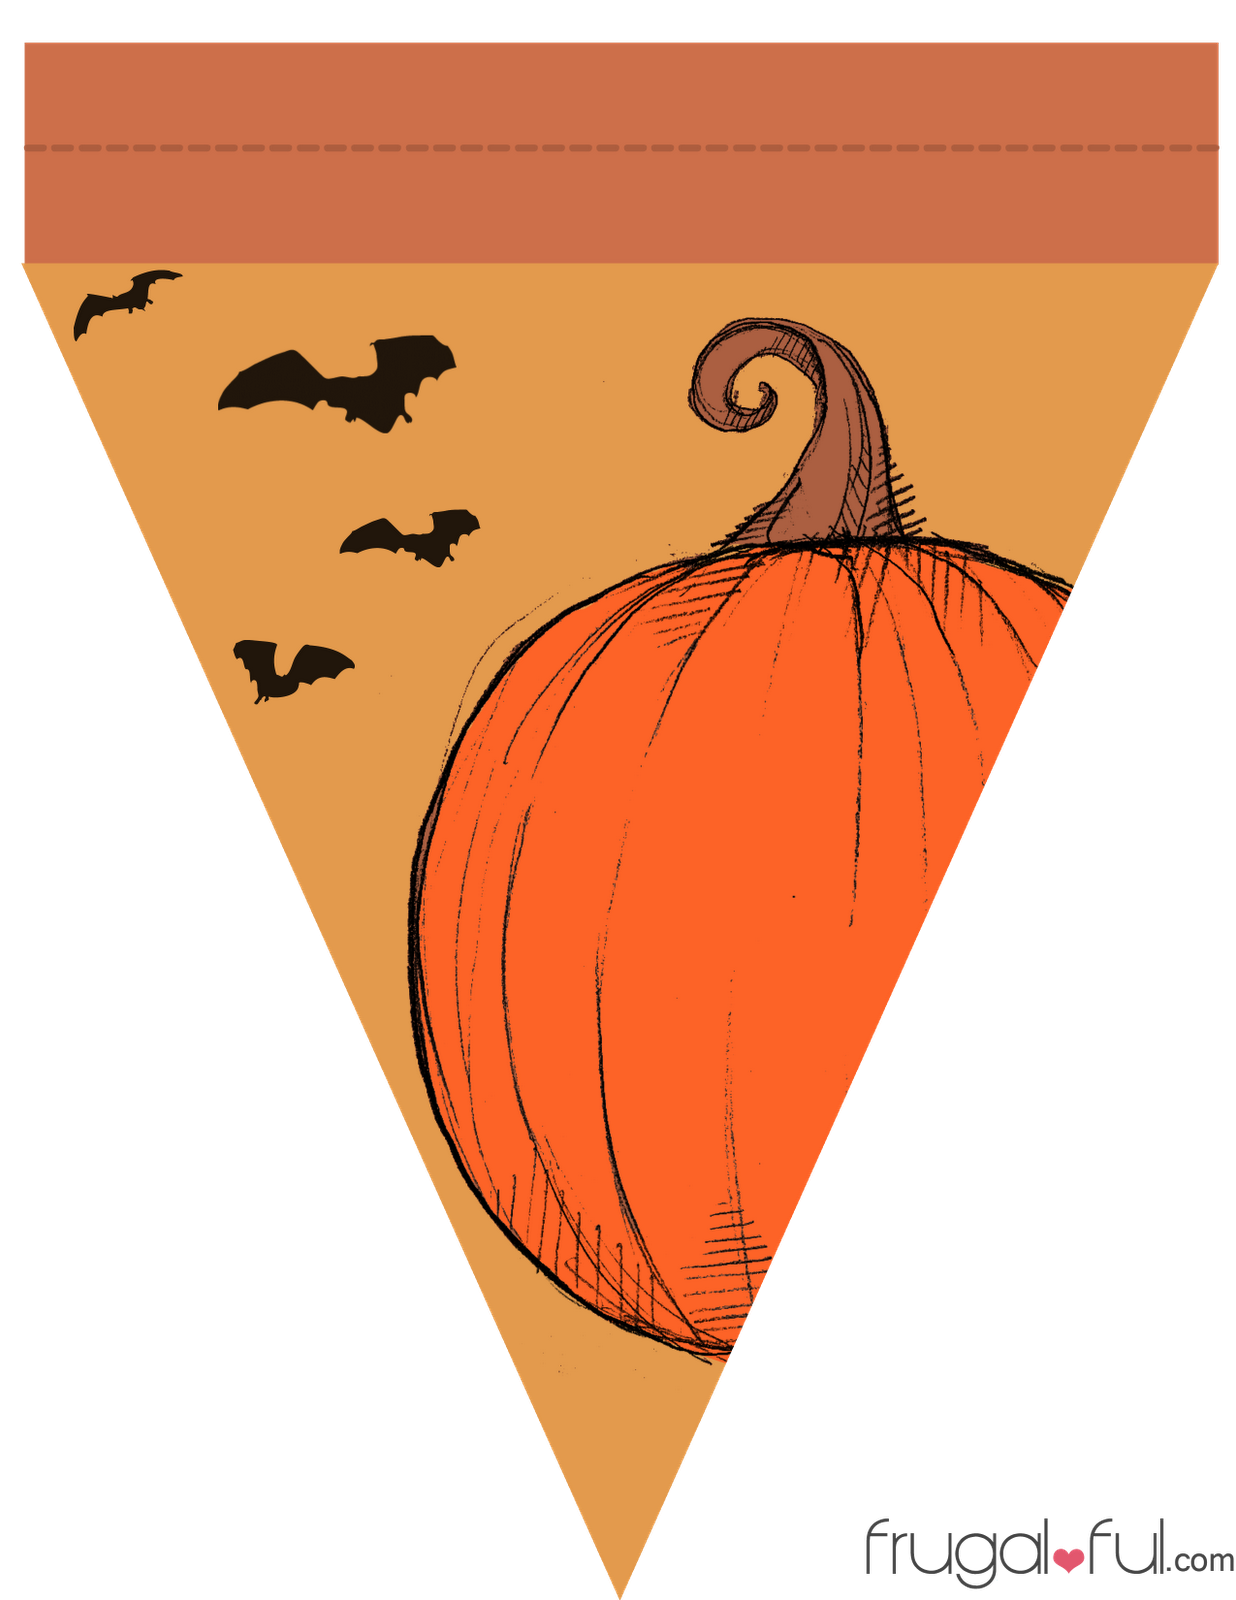 It's just a photo of Peaceful Printable Halloween Banner